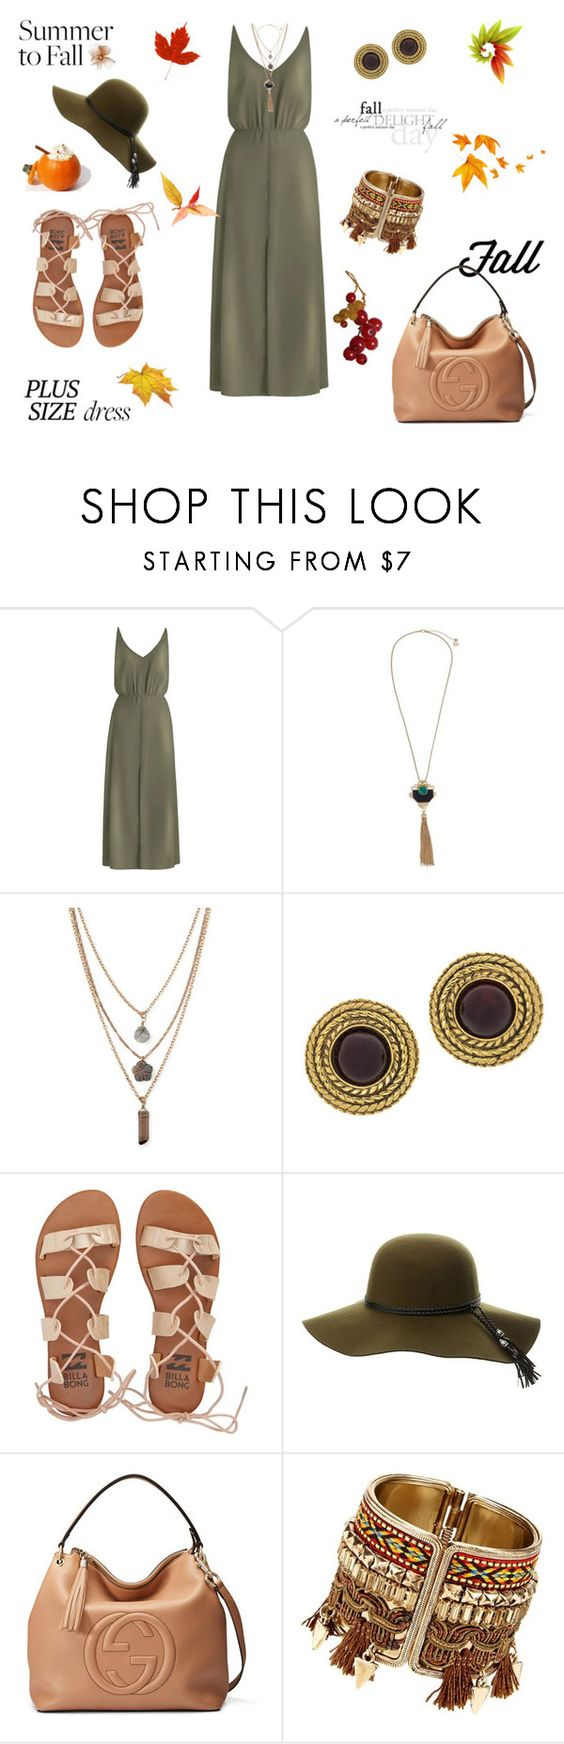 """""""Day to night dress"""" by aniri310 ❤ liked on Polyvore featuring Zimmermann, Erica Lyons, Forever 21, Chanel, Billabong, Charlotte Russe and Gucci"""